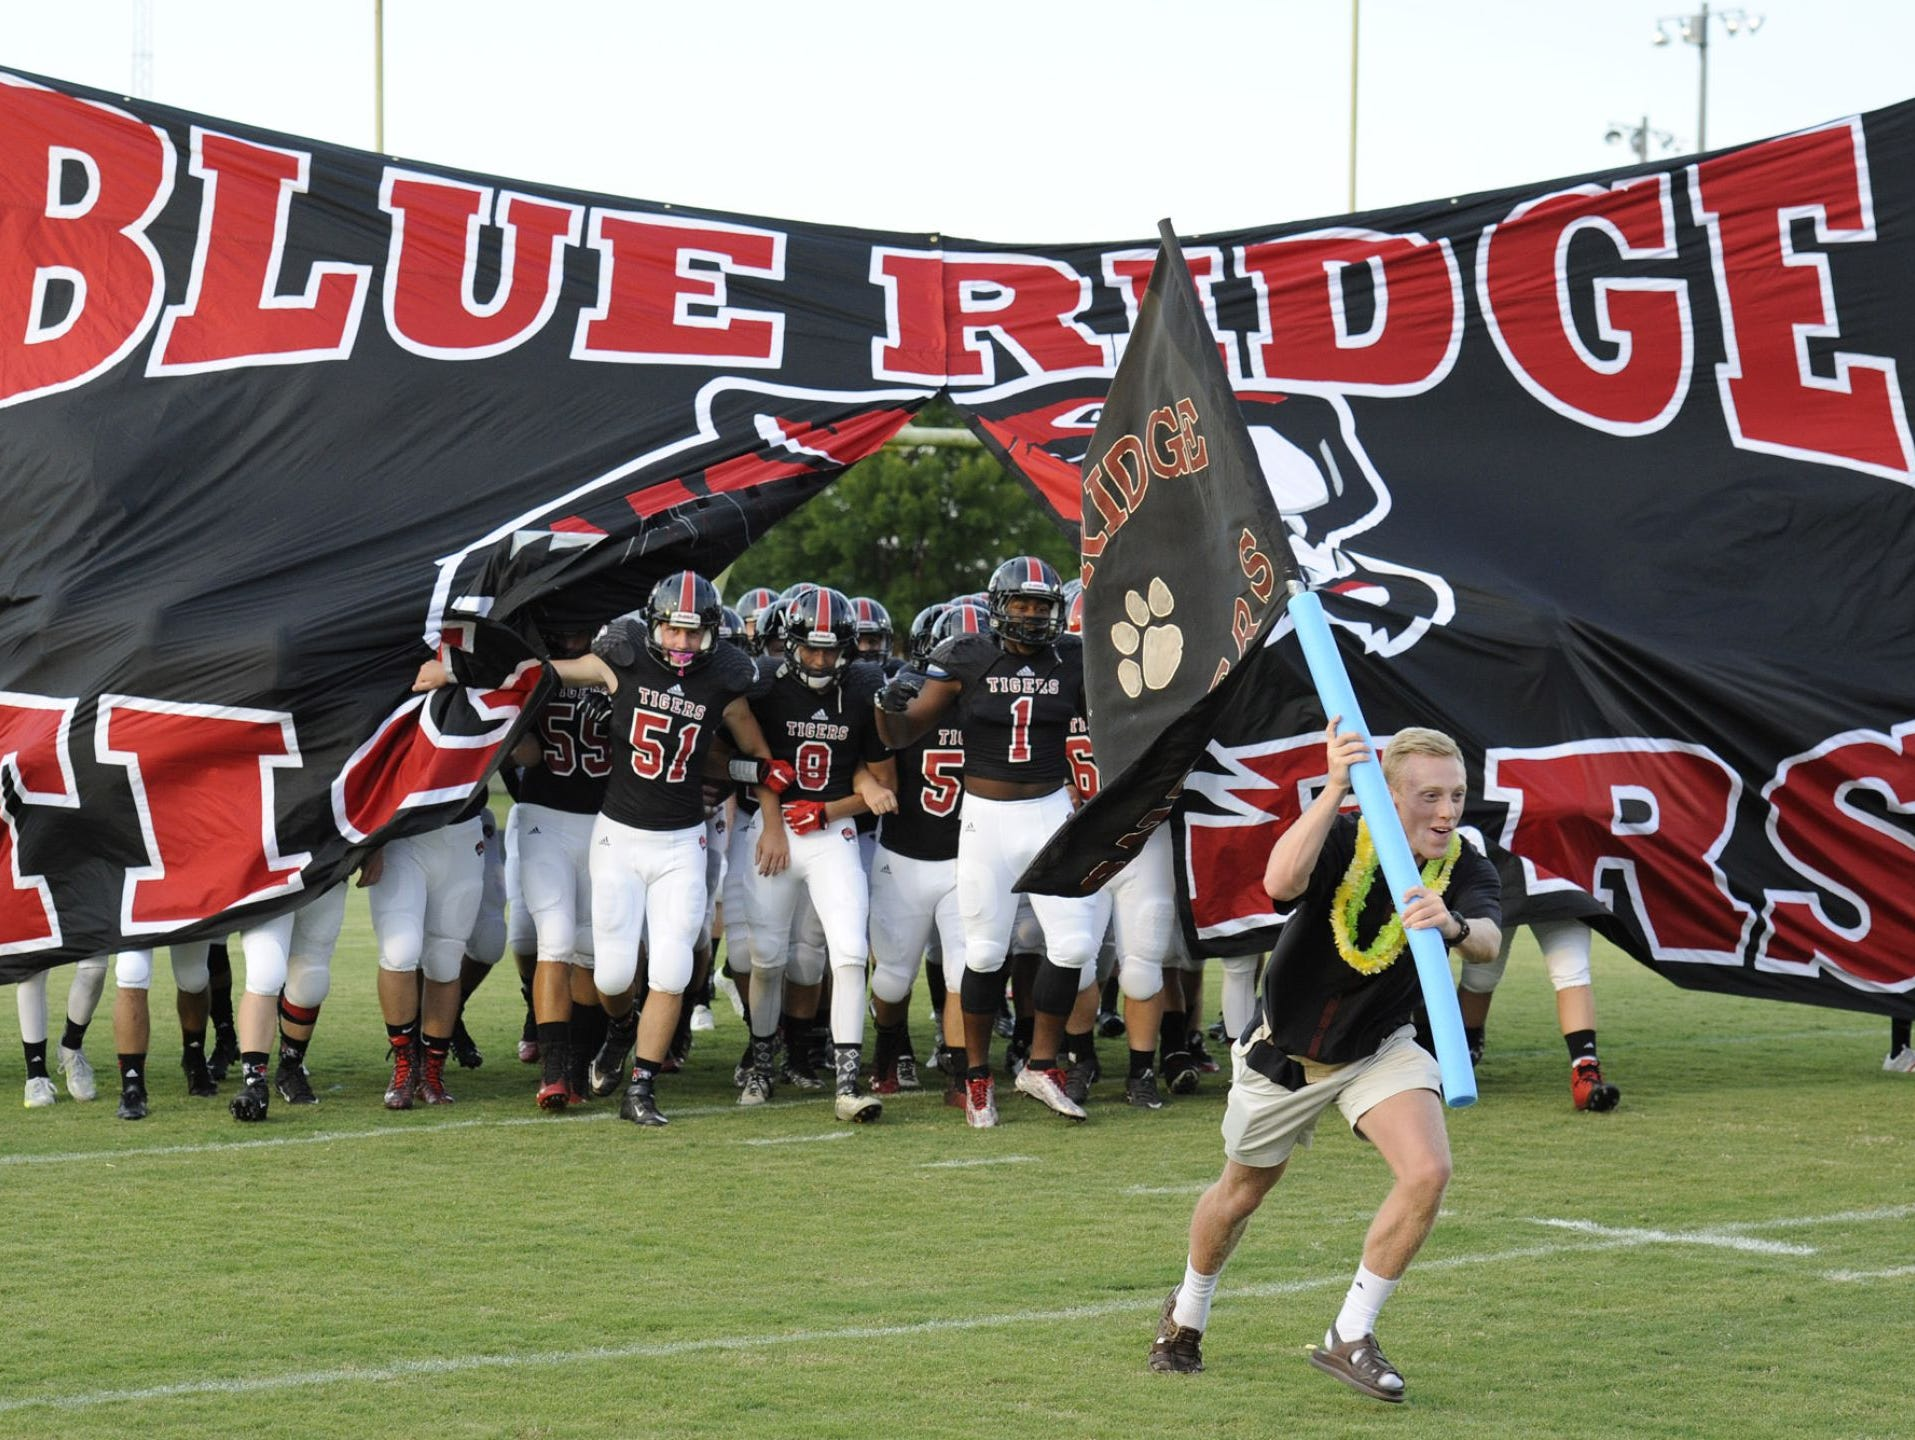 The Emerald at Blue Ridge football game has been moved to tonight at 7 because of the impending inclement weather.